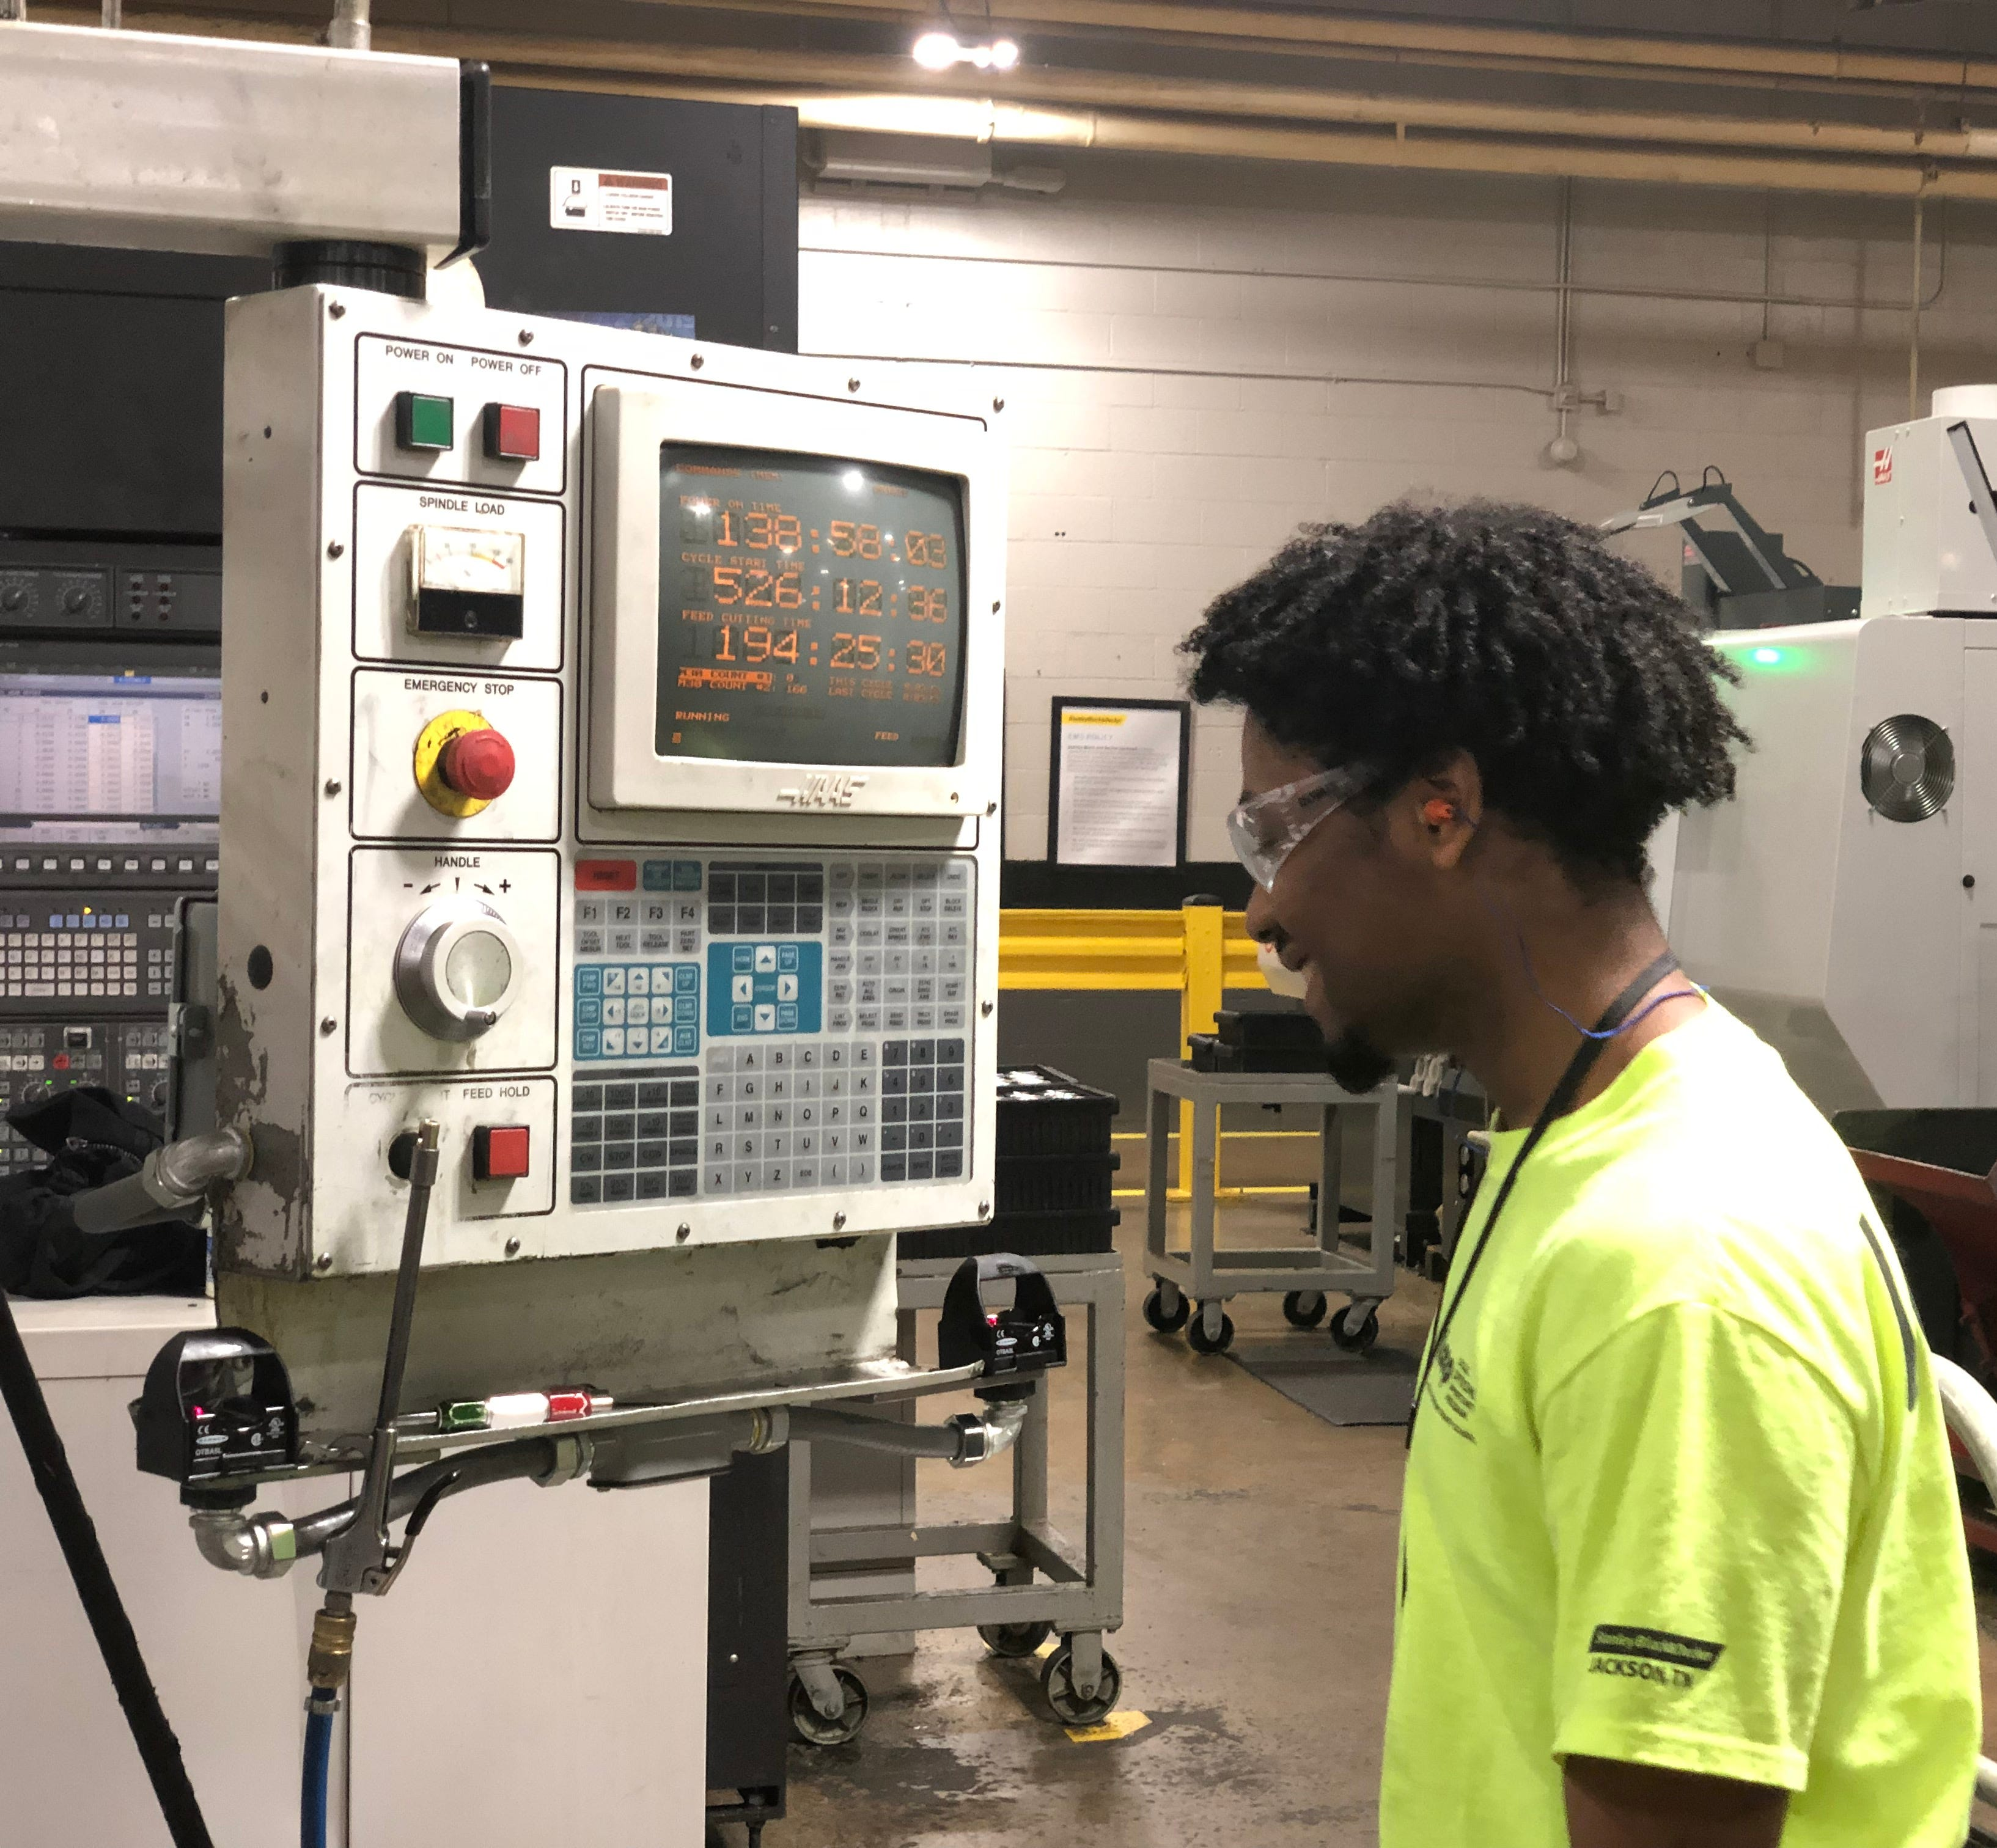 Cameron Walker smiles after completing a task on the mill machine at Stanley Black & Decker.